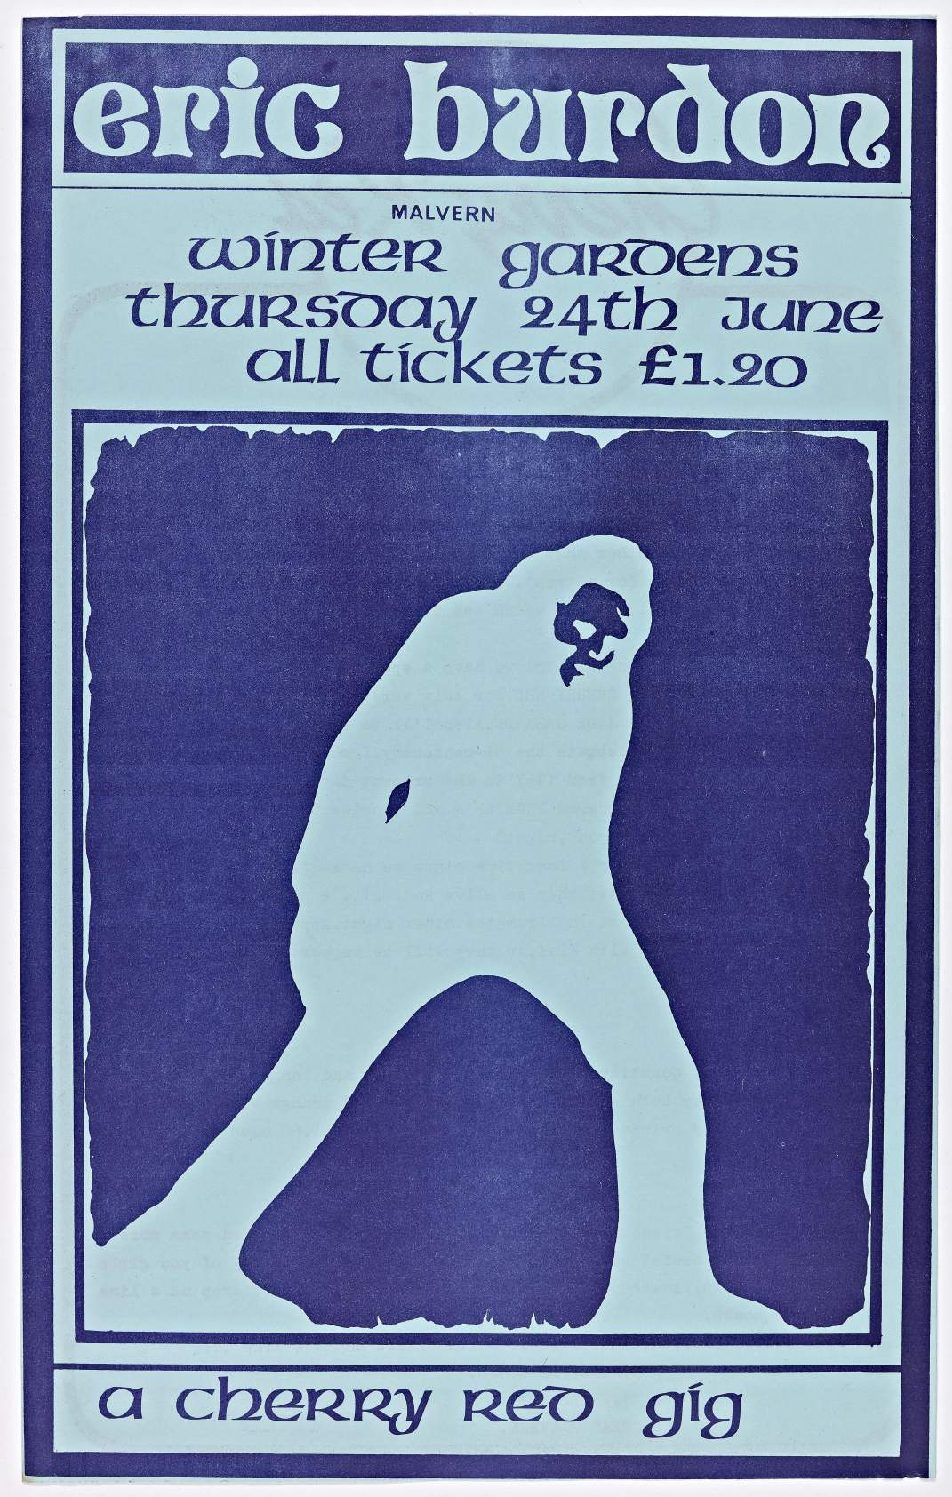 Cherry Red 'fanzine', including advert for Eric Burdon at Malvern Winter Gardens, 24 June 1976